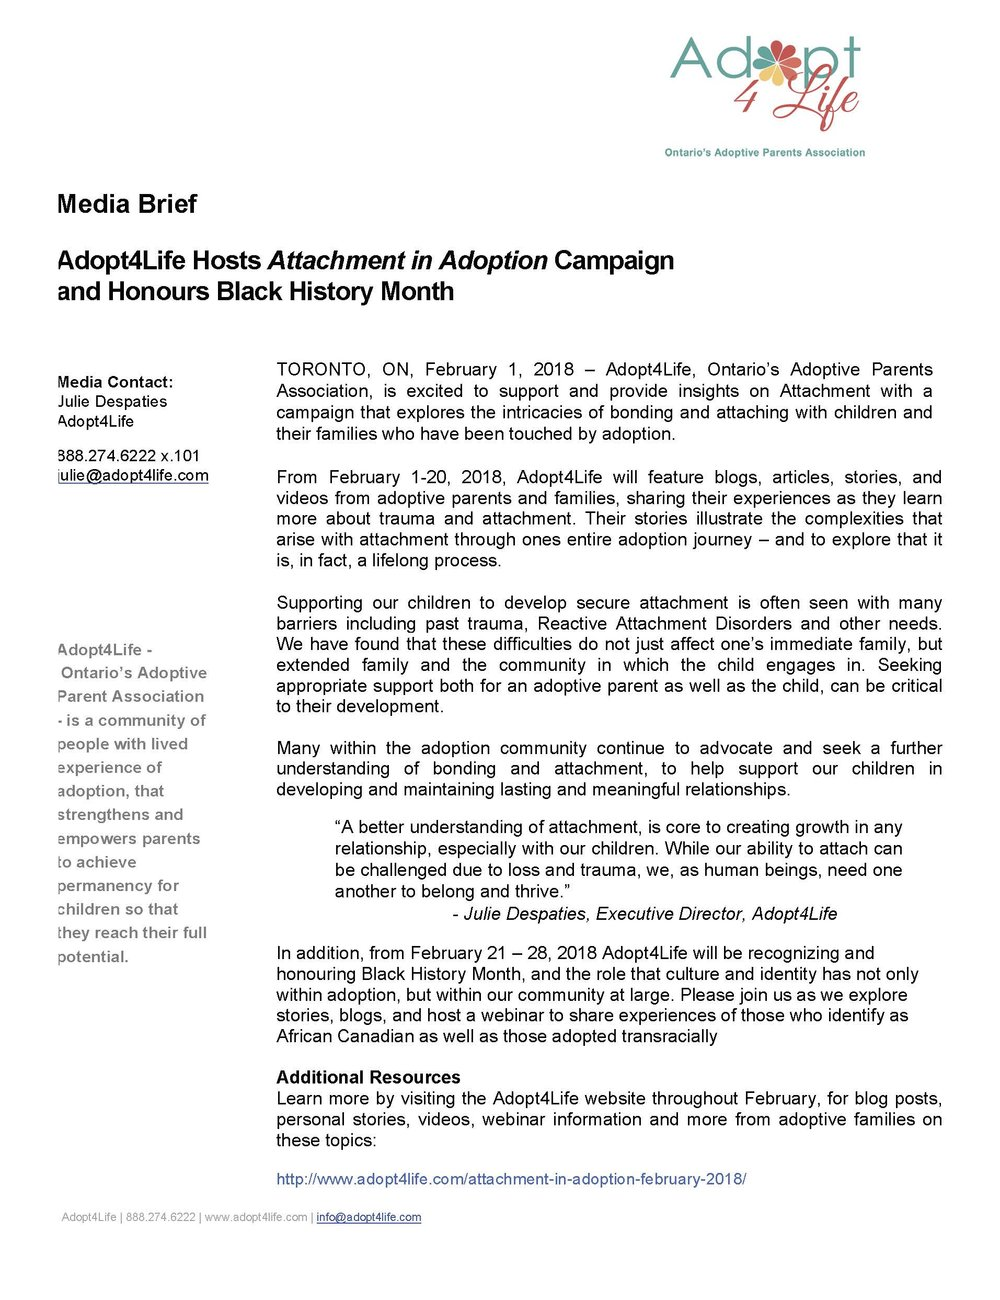 Attachment Campaign Media Release Feb 2018 FV.jpg